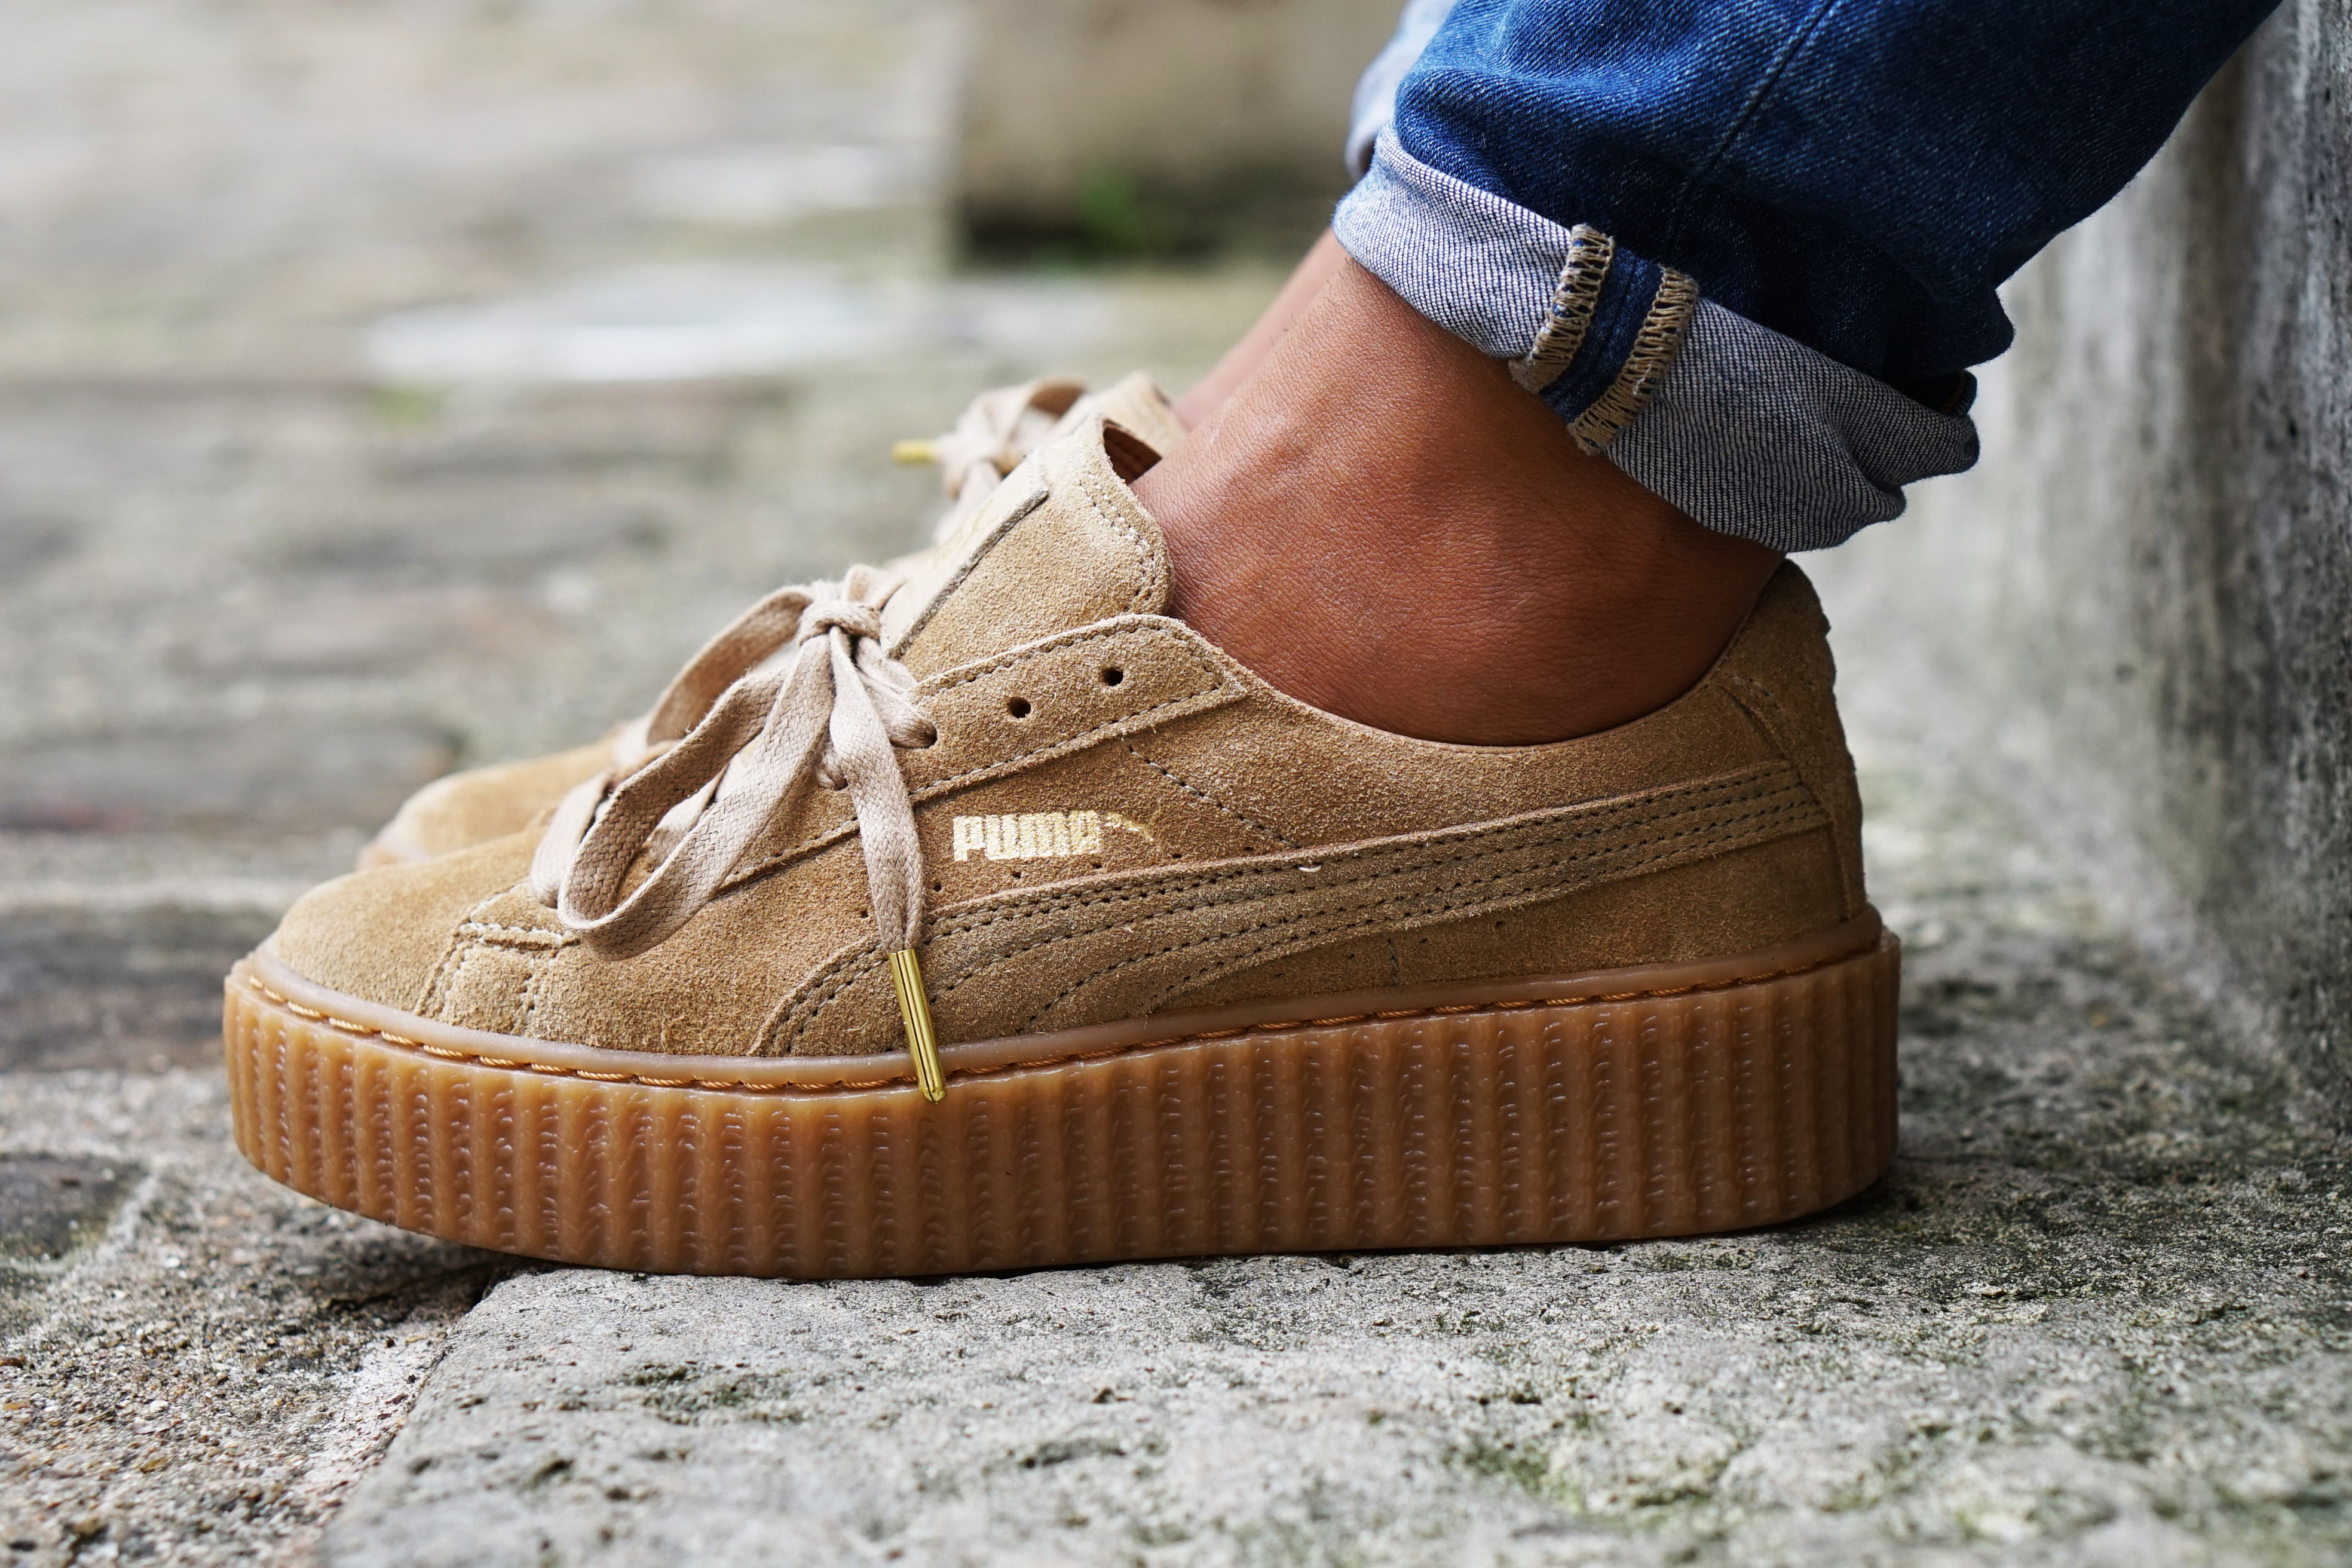 buy online 9d922 41d46 Puma Creeper by Rihanna. I NEED these sneakers in my life! Aghhhhh.